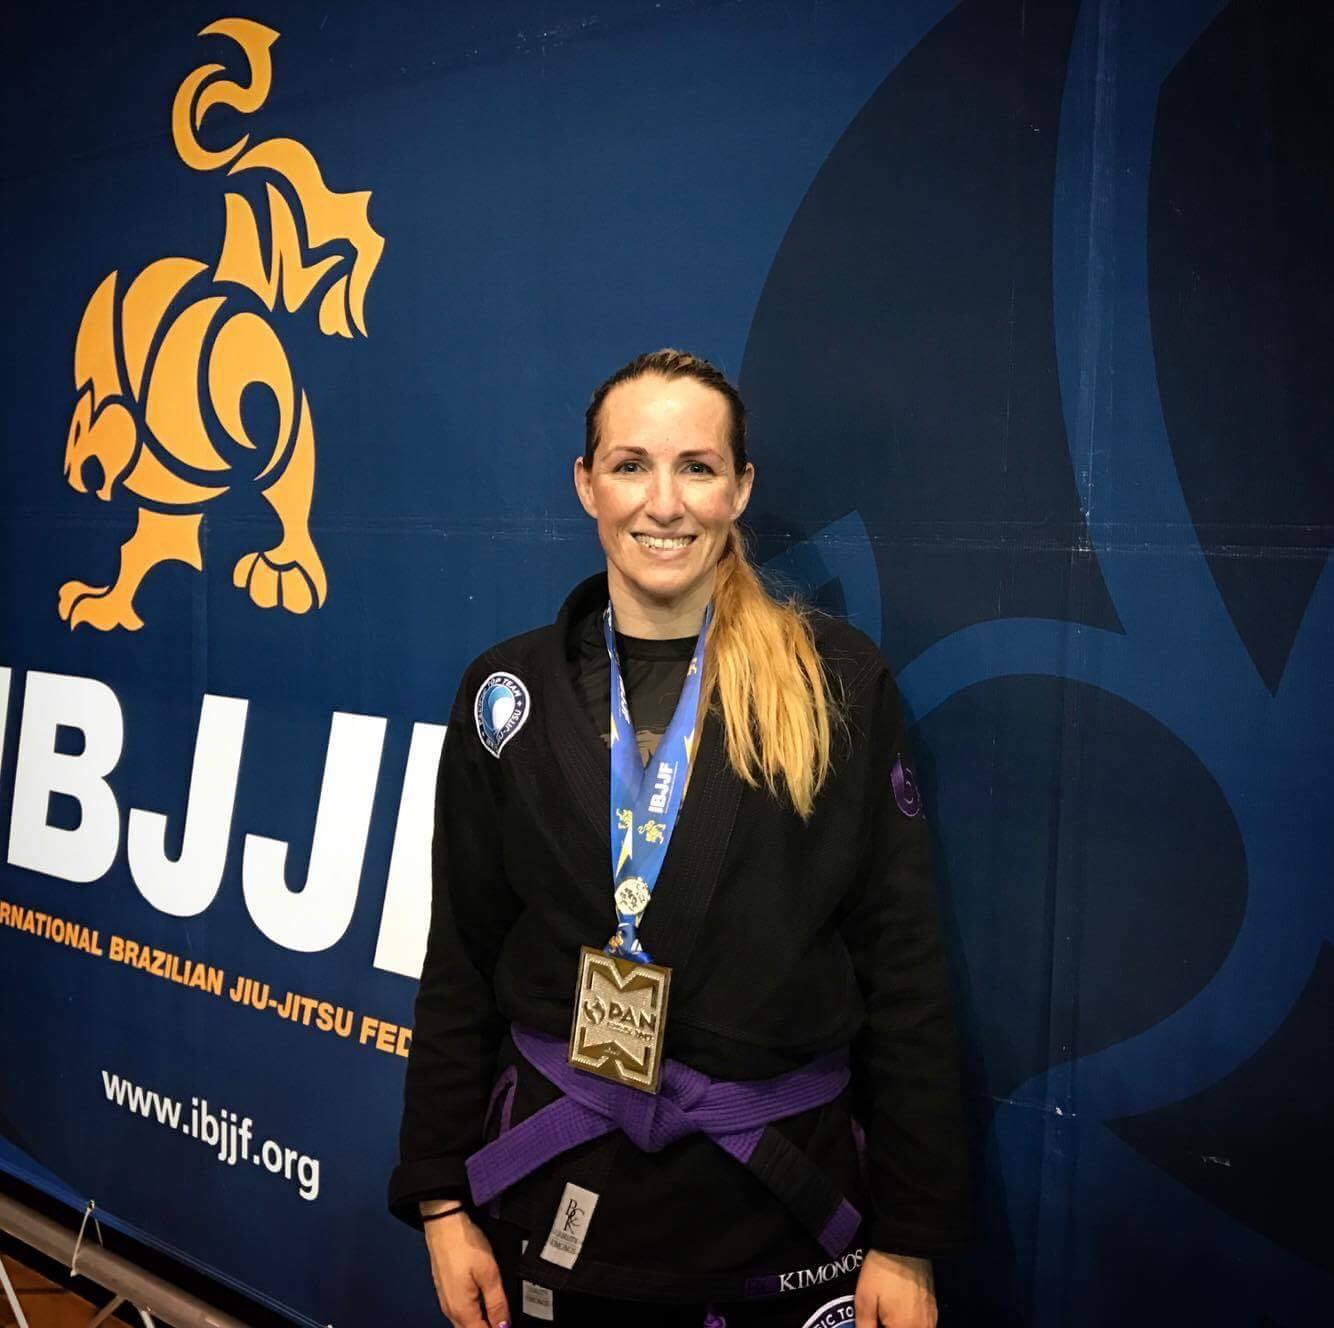 Coach Kim Multiple times worlds, pan & European Champion and #1 Ranked Purple belt Master by the International Brazilian Jiu Jitsu Federation (IBJJF)